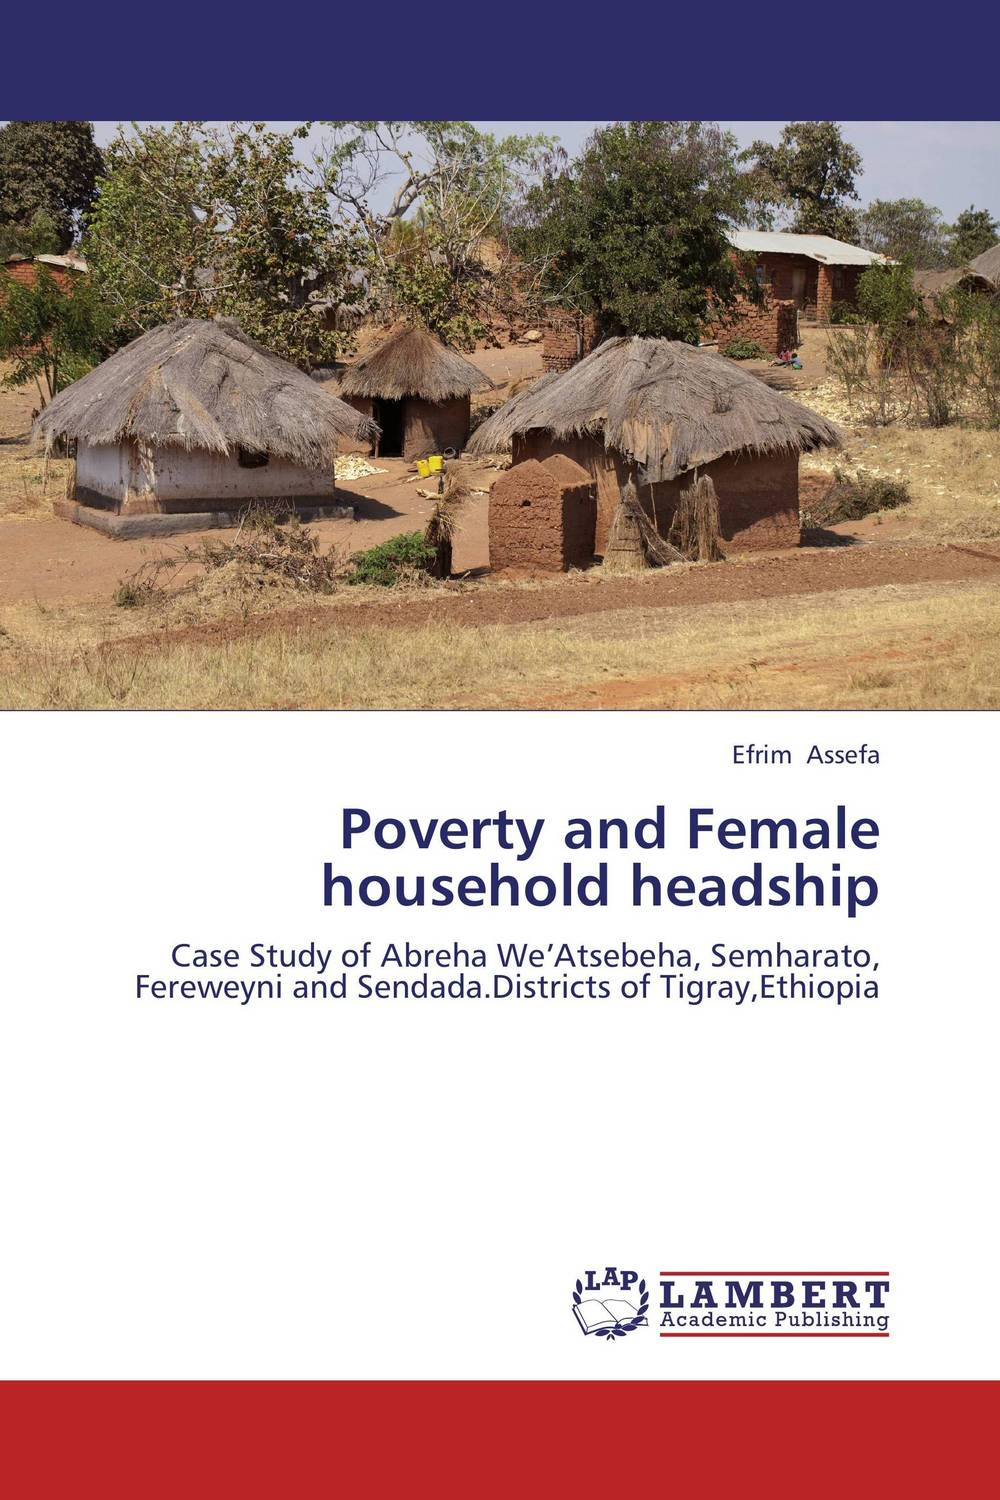 Poverty and Female household headship